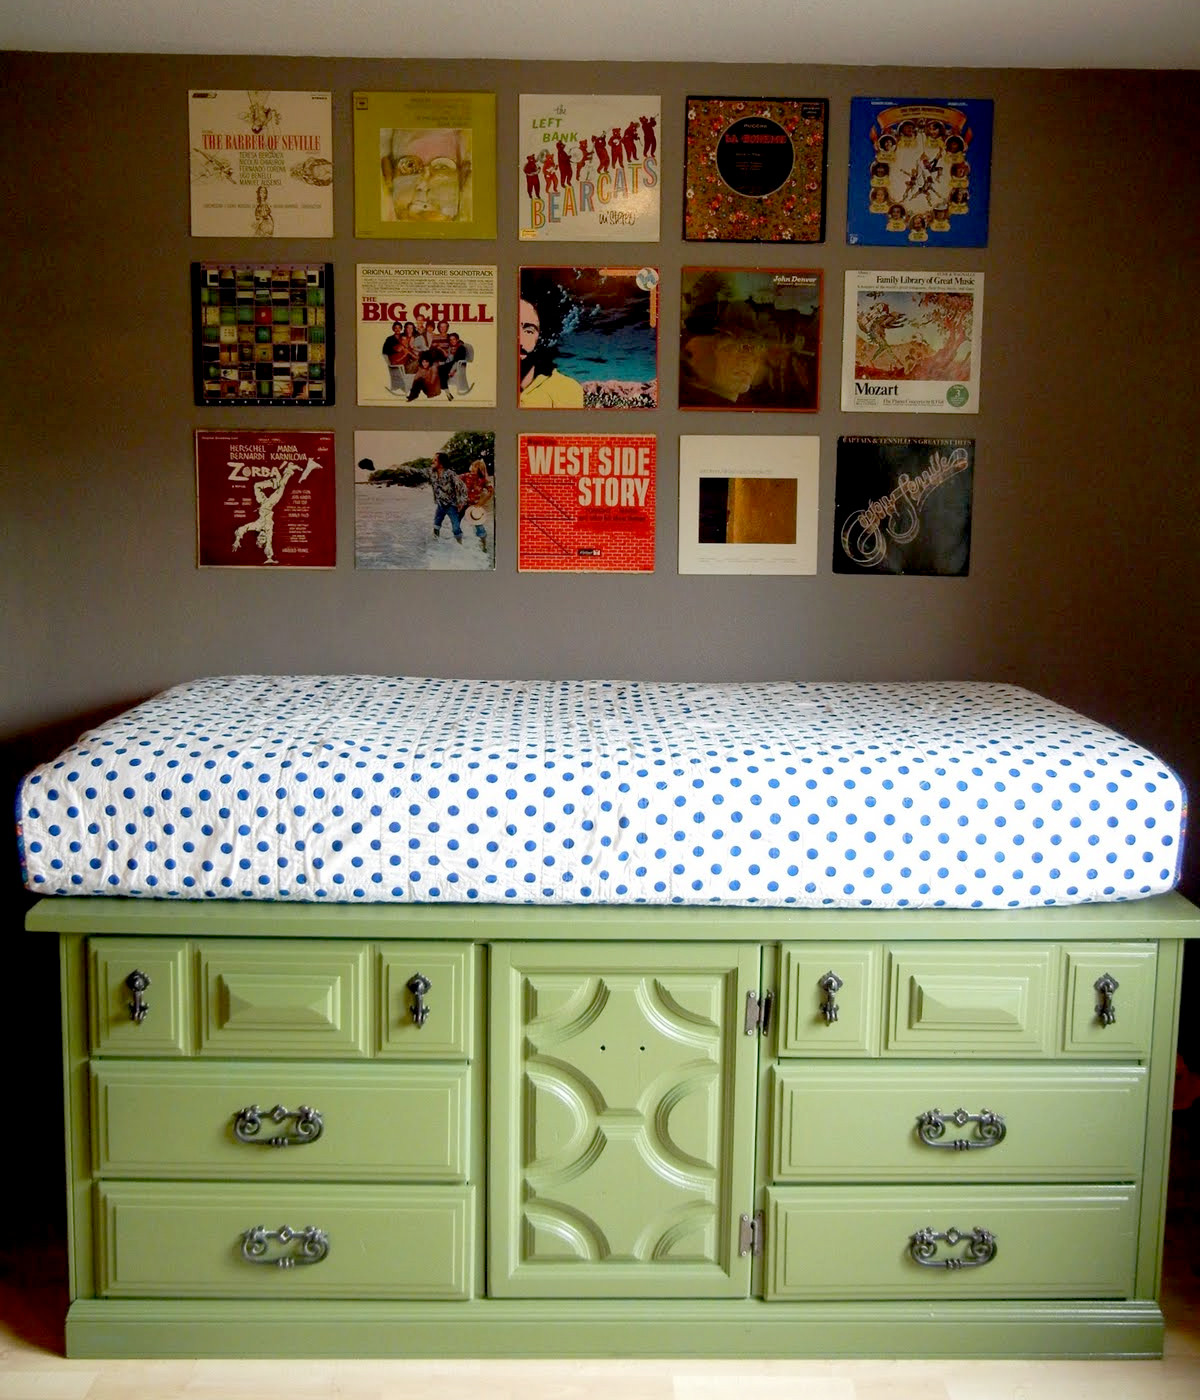 Best ideas about Storage Beds DIY . Save or Pin 8 DIY Storage Beds to Add Extra Space and Organization to Now.